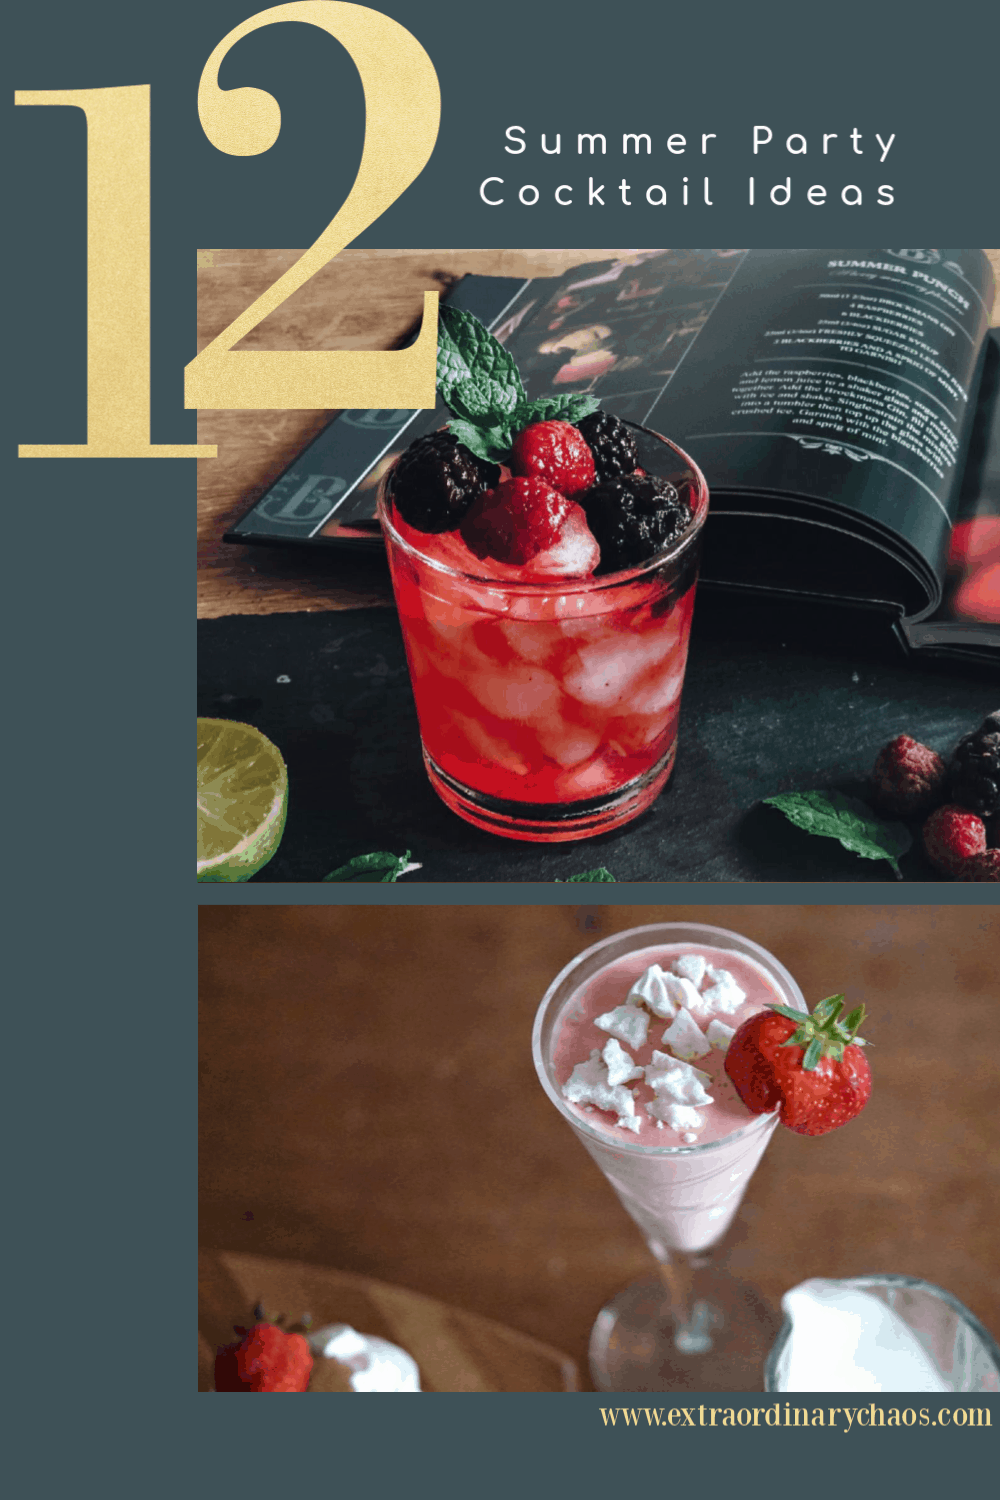 Summer Party Cocktail Ideas to make the best cocktails #cocktailrecipes #cocktails #summercocktails #partyideas